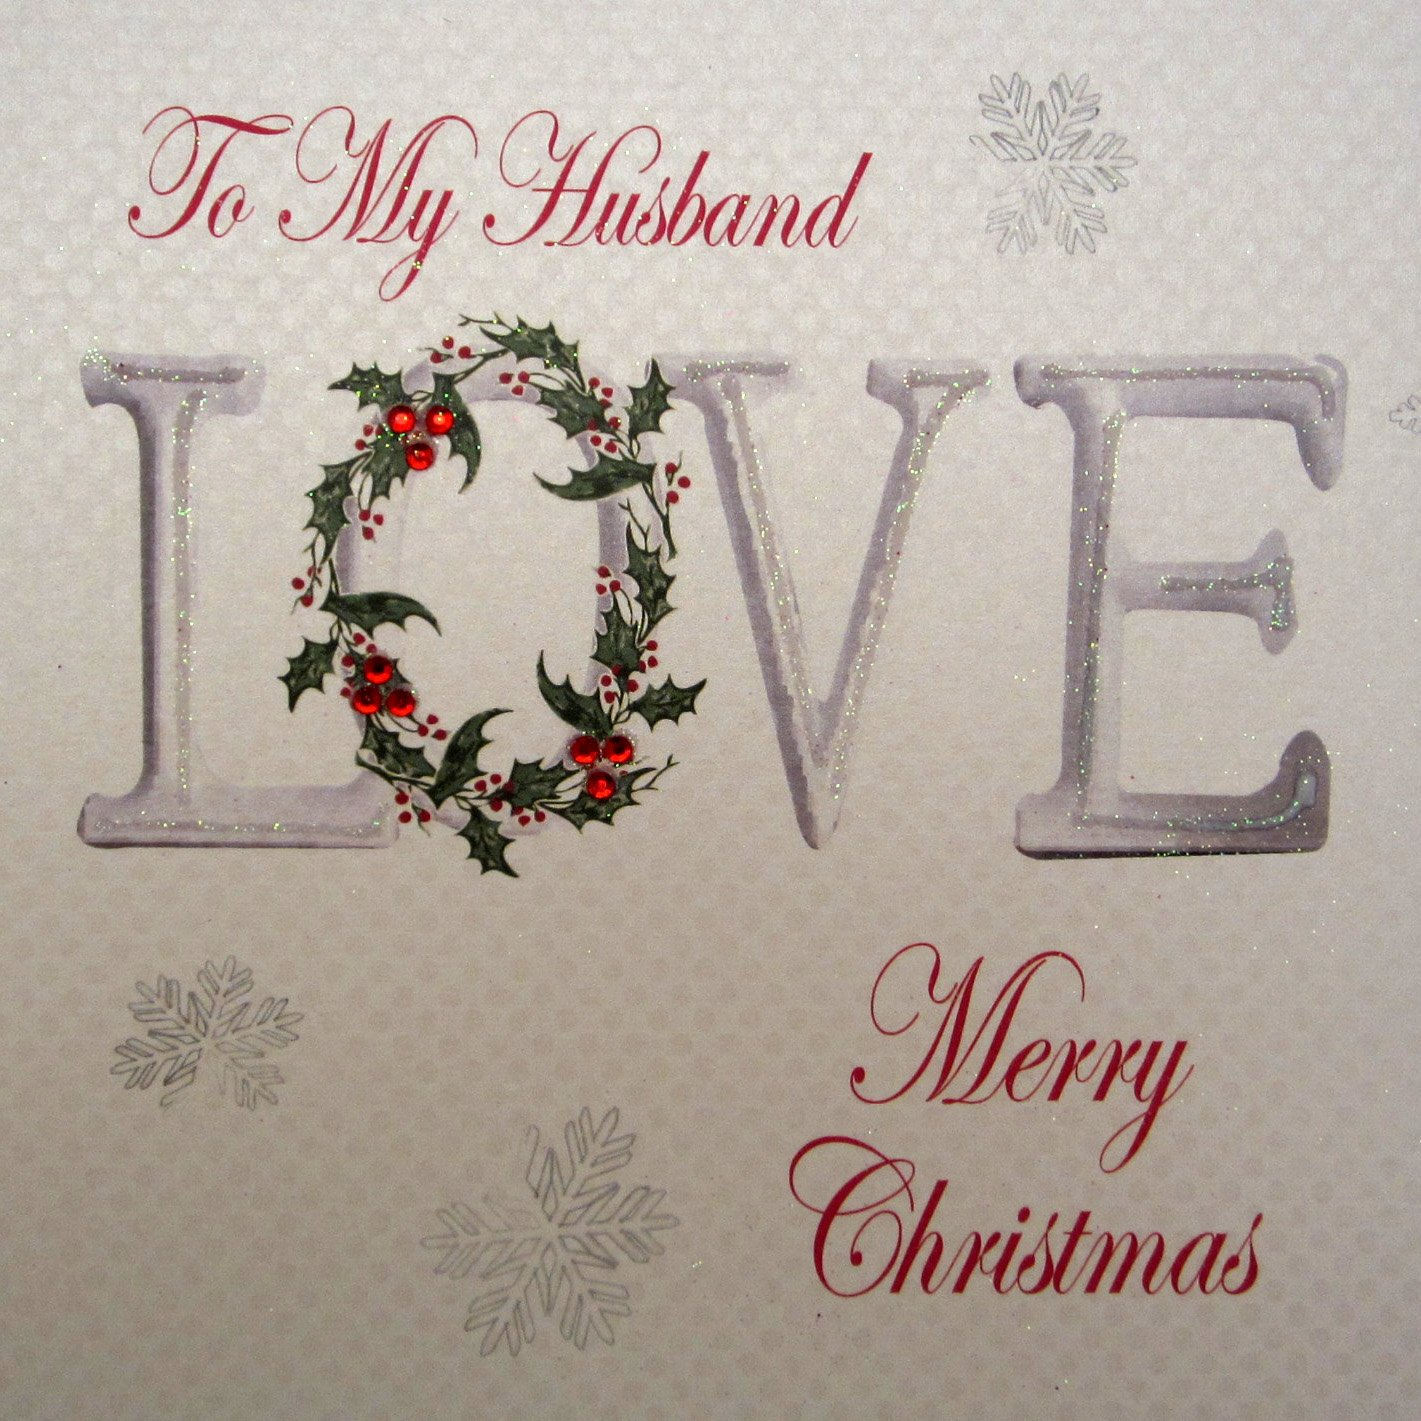 Amazon.com: White Cotton Cards To My Husband Merry Christmas ...